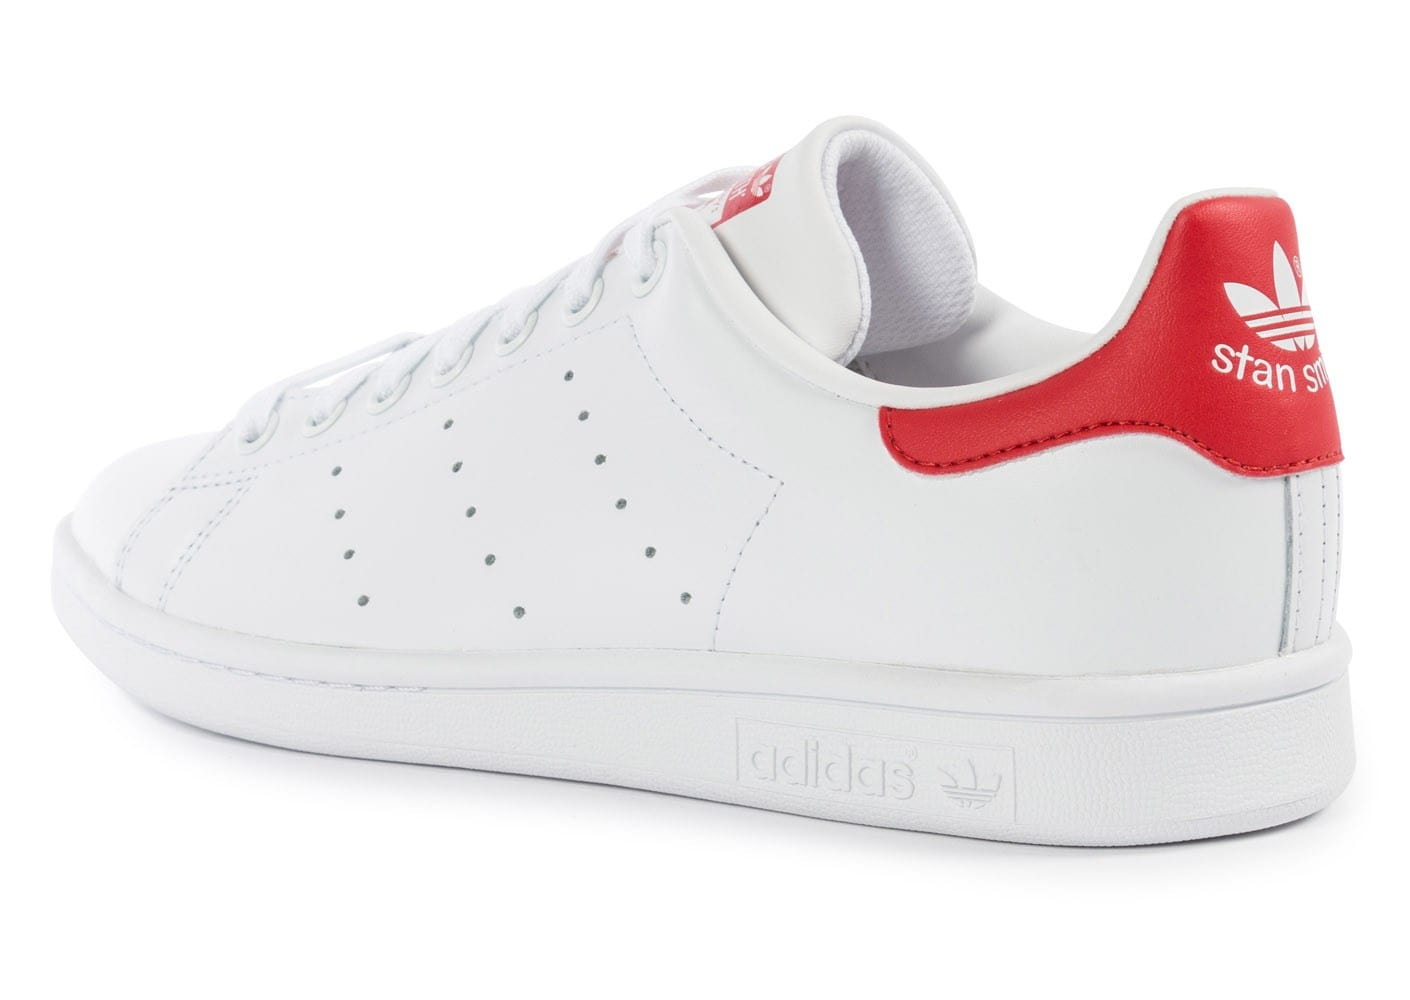 adidas Stan Smith Blanche et rouge - Chaussures Baskets ...